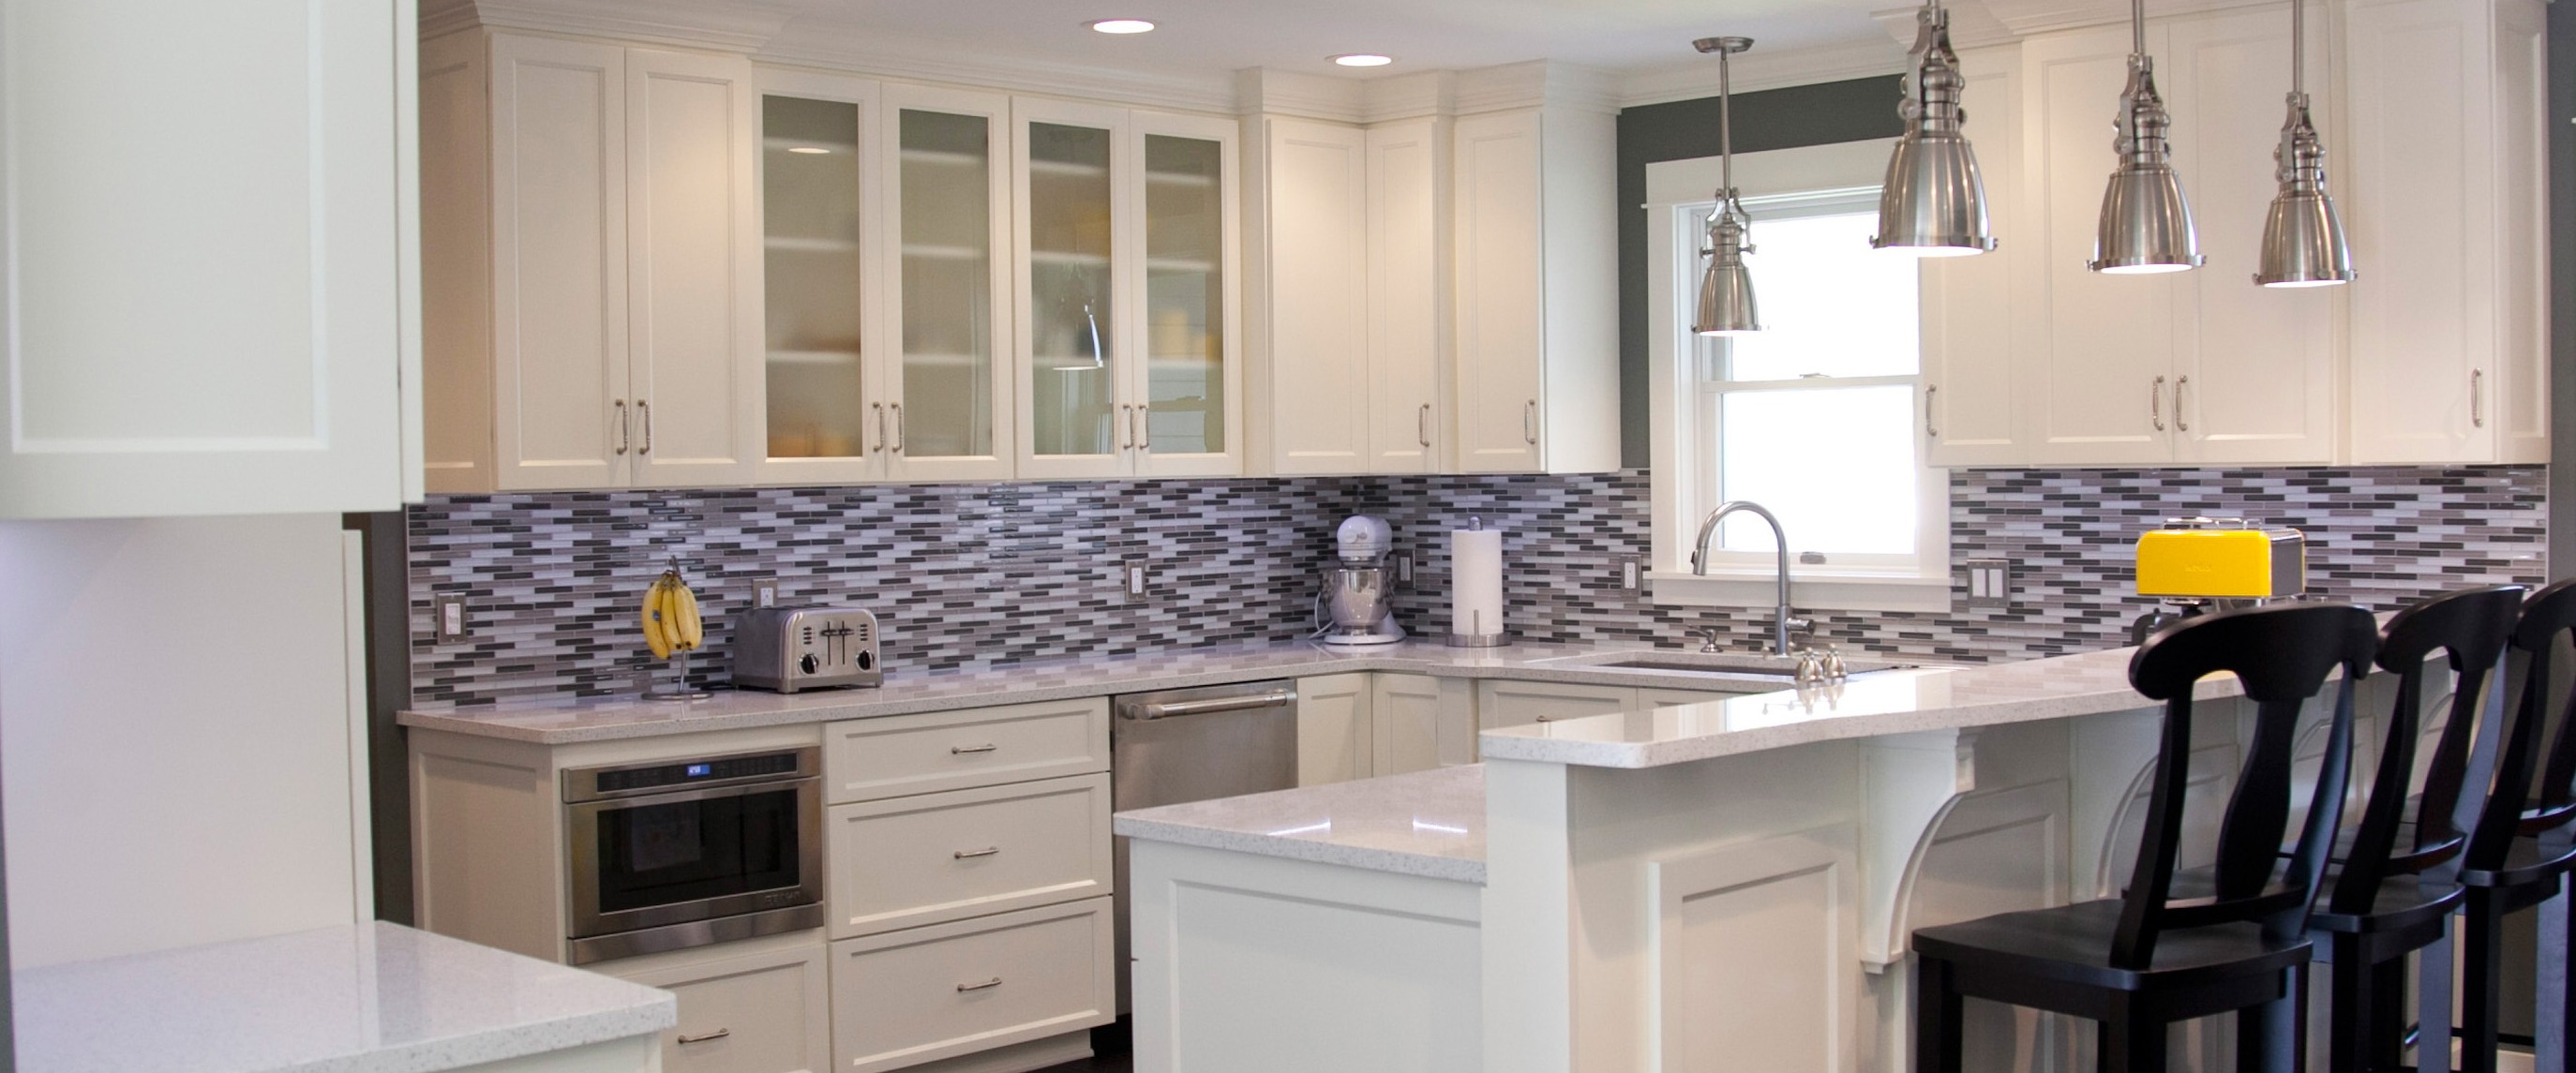 s j custom kitchen cabinets ltd cabinet company custom cabinetry millwork sauk centre 25805